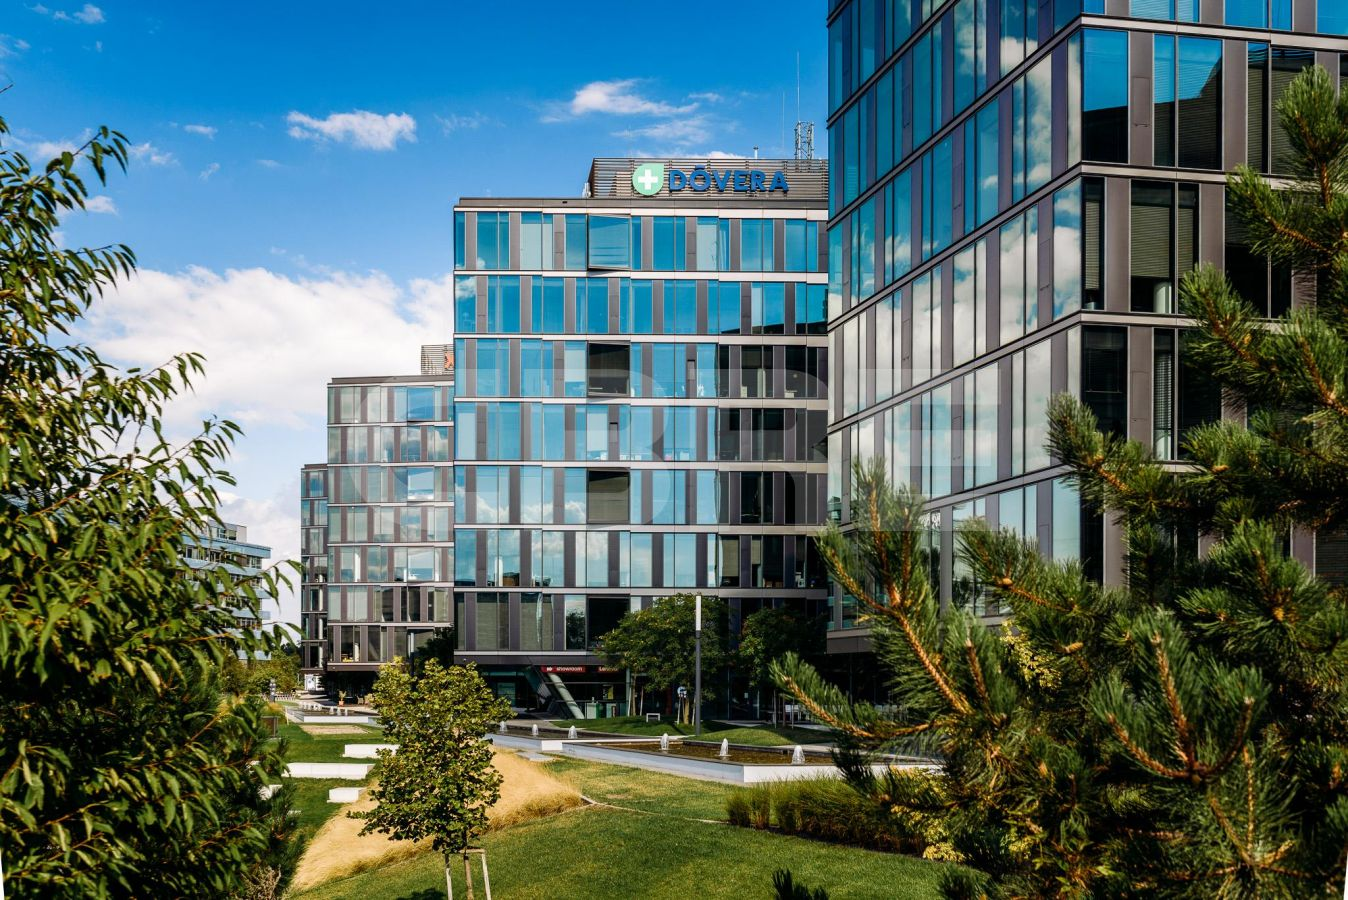 Digital Park phase III, Bratislava - Petržalka | Offices for rent by CBRE | 1